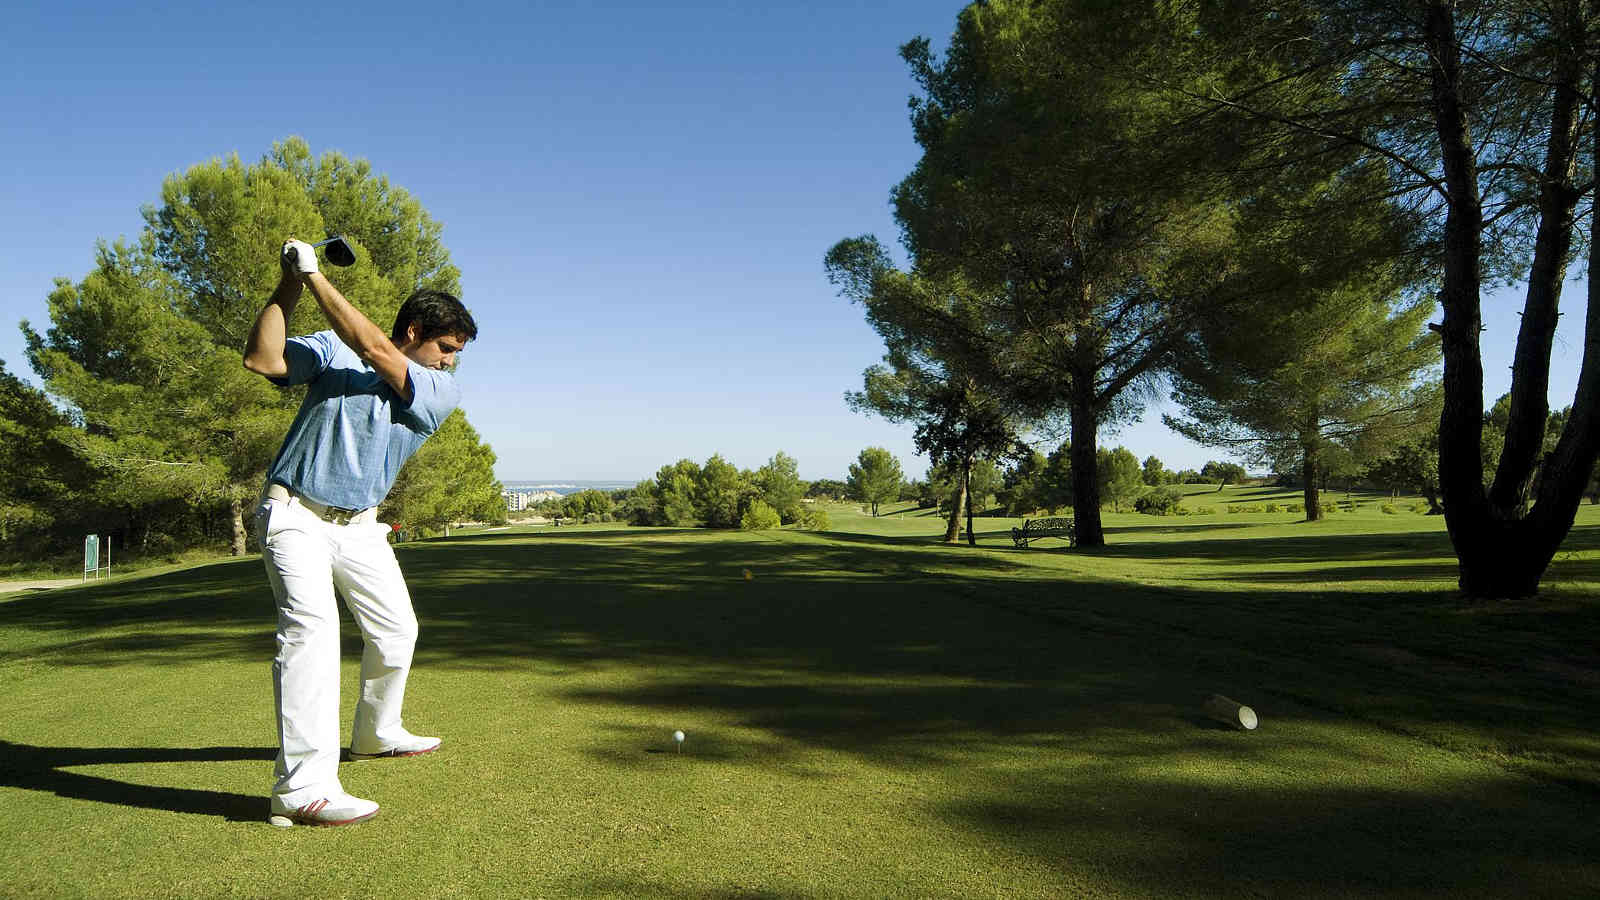 Pga tour live events on tv at Four Points by Sheraton Barcelona Diagonal